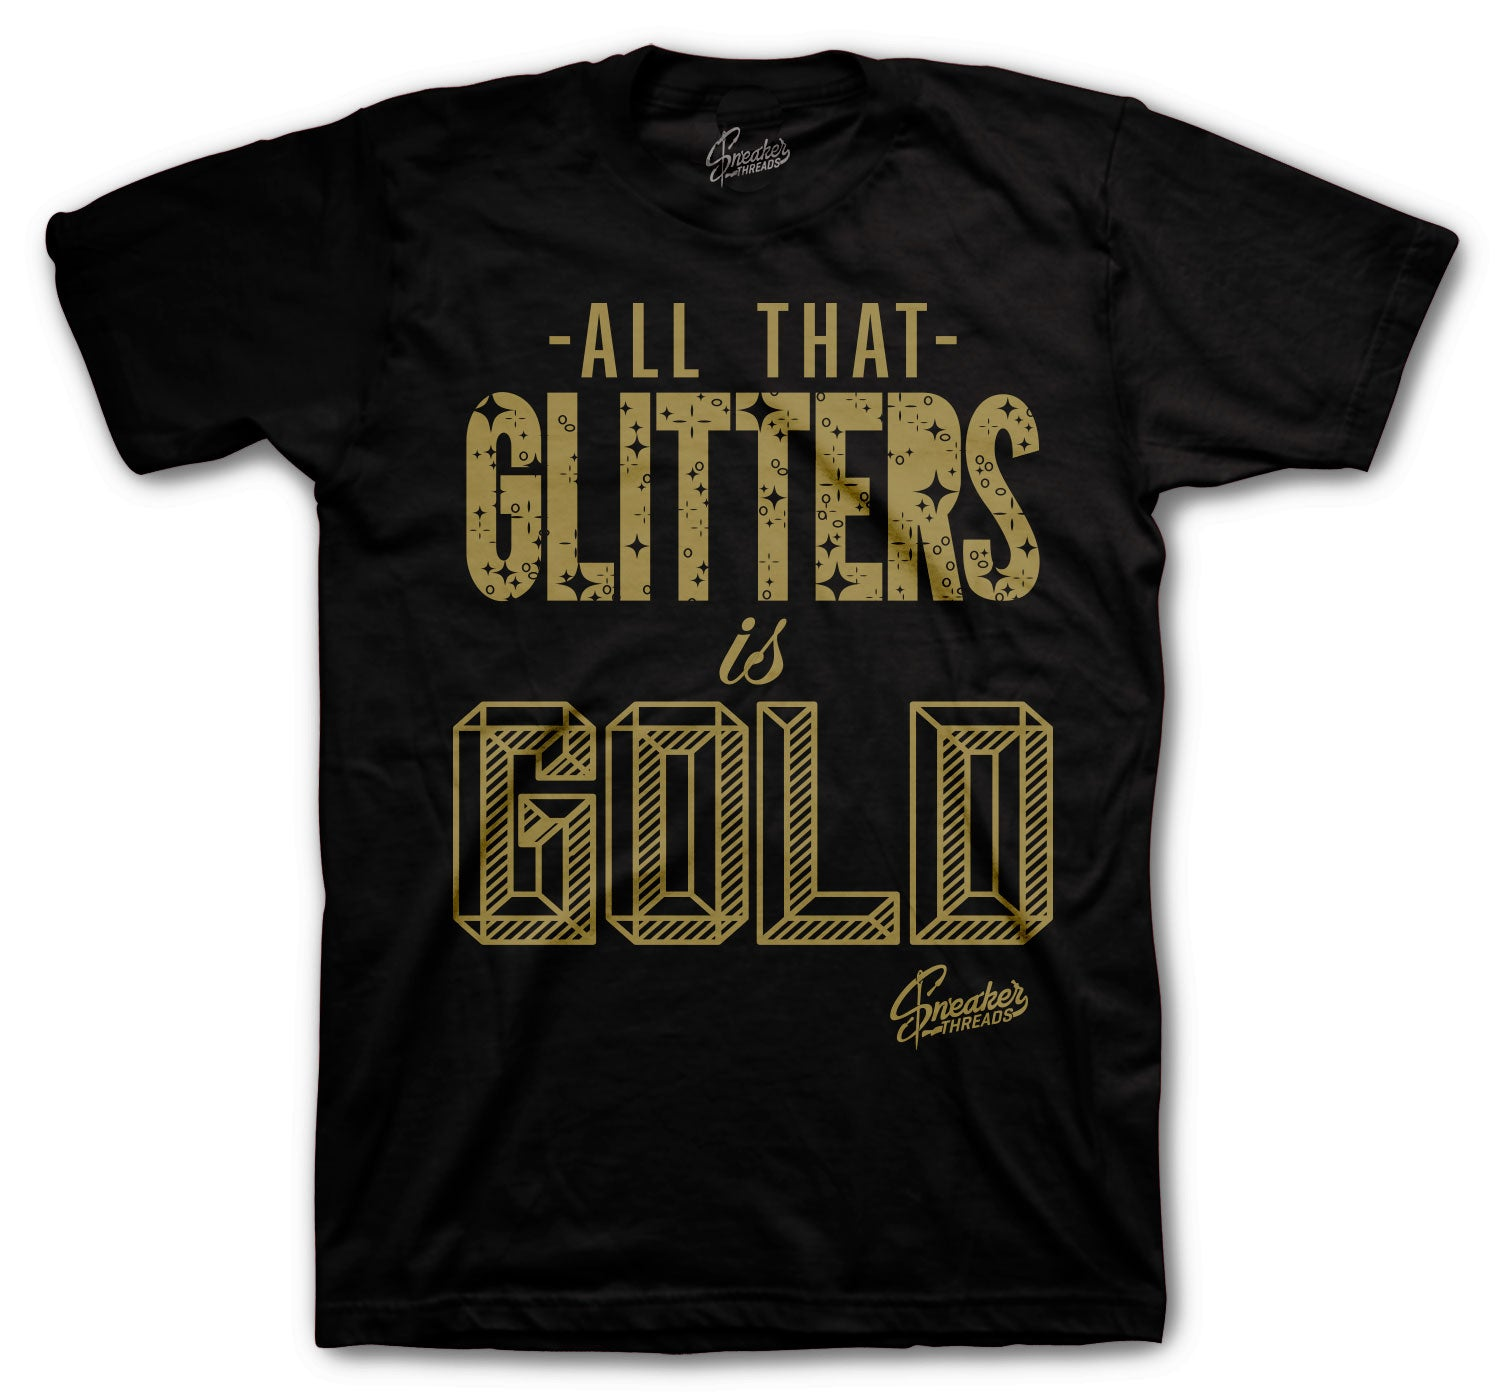 JOrdan 1 Black Gold Sneaker collection matching tees